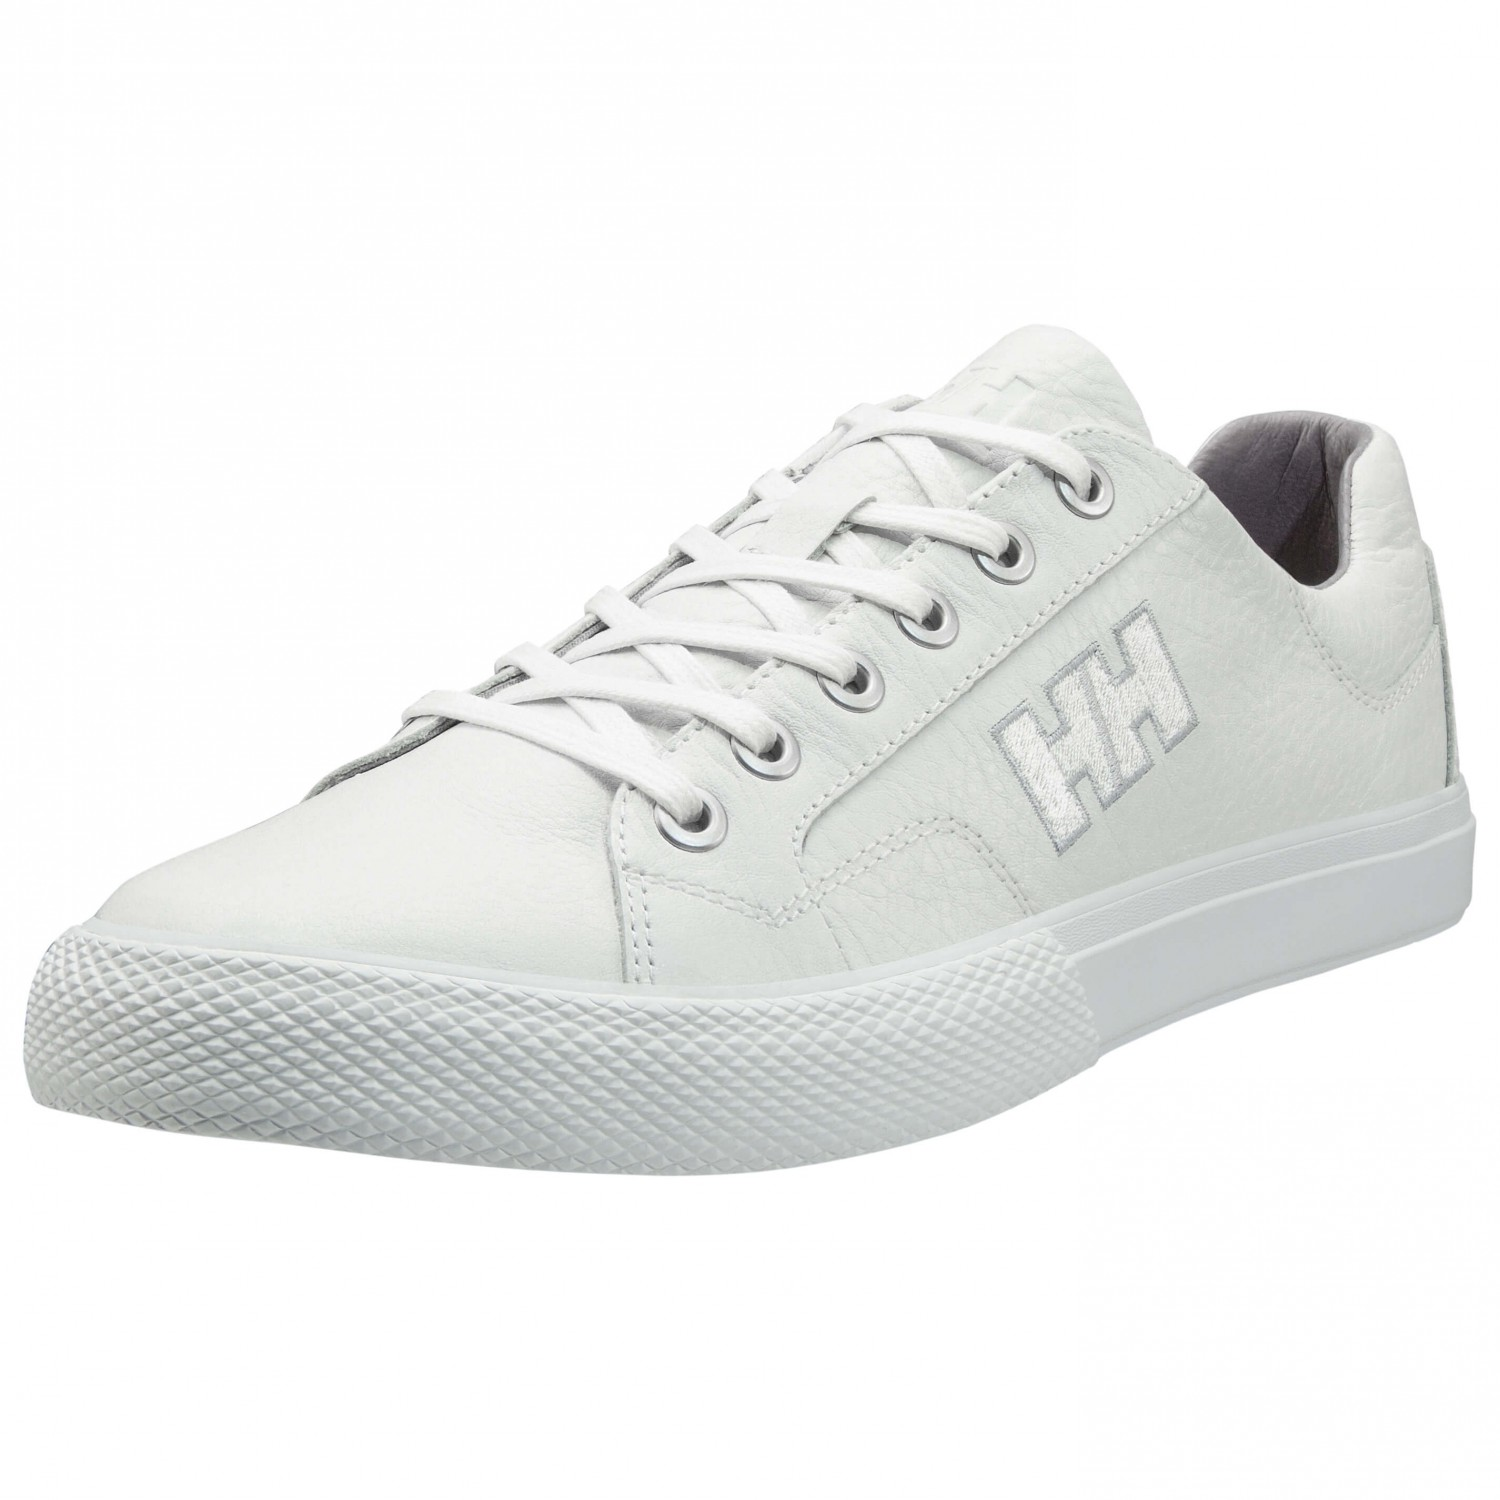 Helly Hansen Women's Fjord LV 2 Sneakers Black Off White Excalibur   6,5 (US)